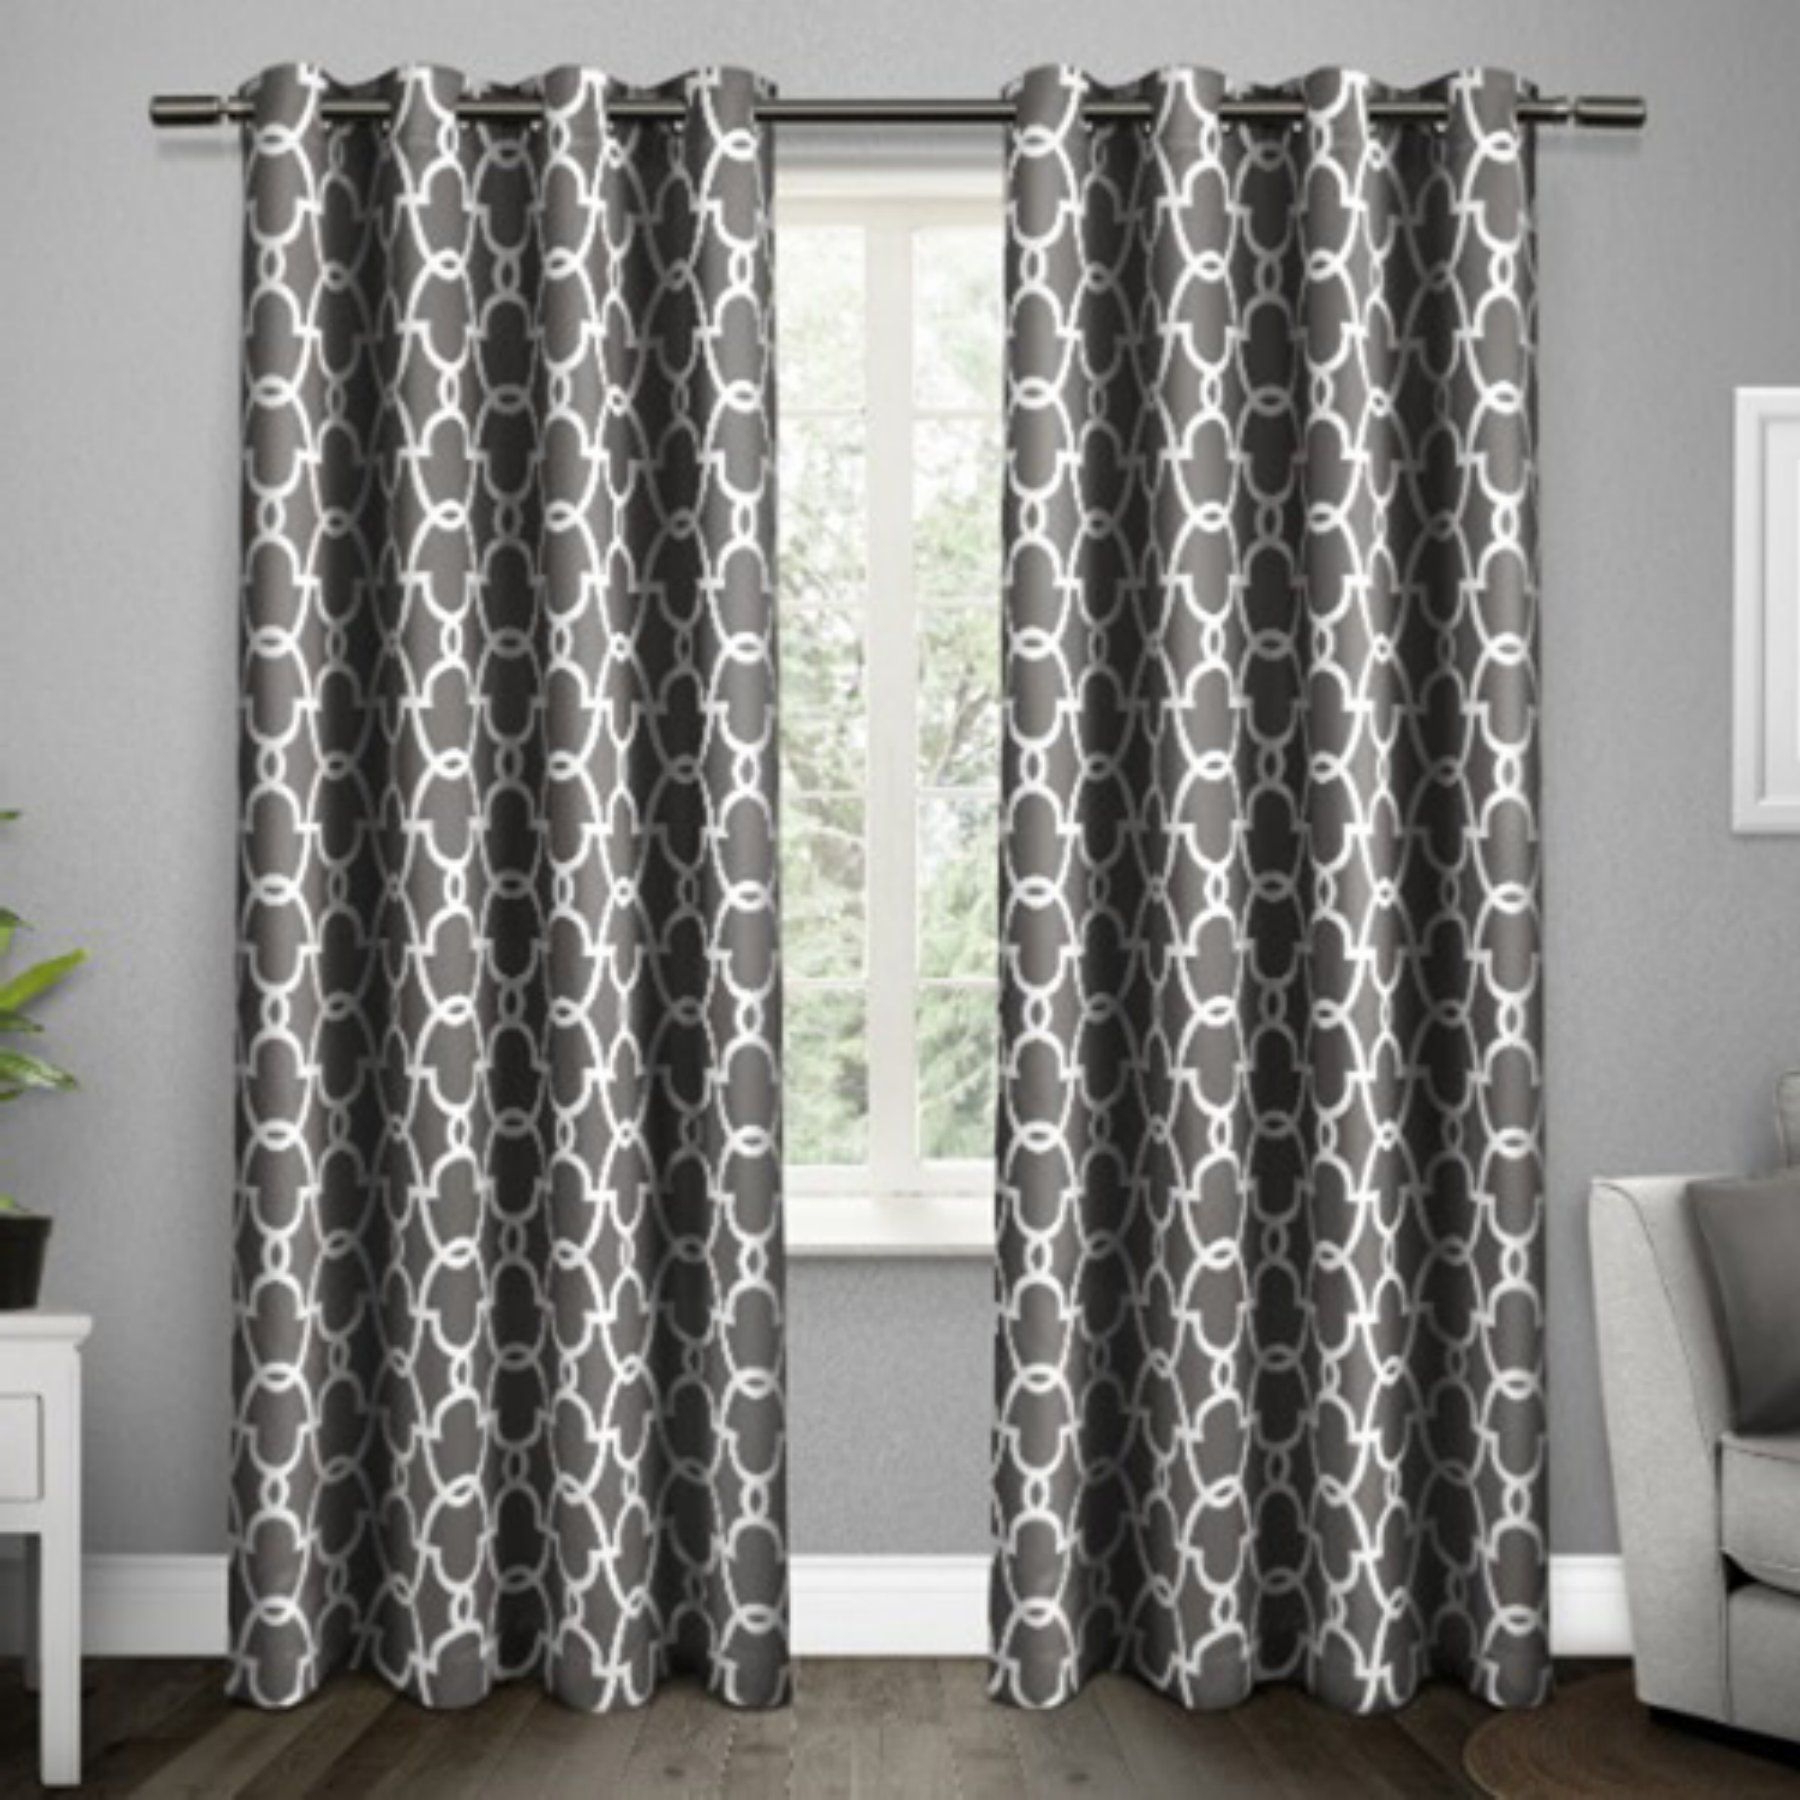 Famous The Curated Nomad Duane Jacquard Grommet Top Curtain Panel Pairs Throughout Exclusive Home Gates Window Curtain Panel Pair – Eh8135 01 2 (Gallery 7 of 21)